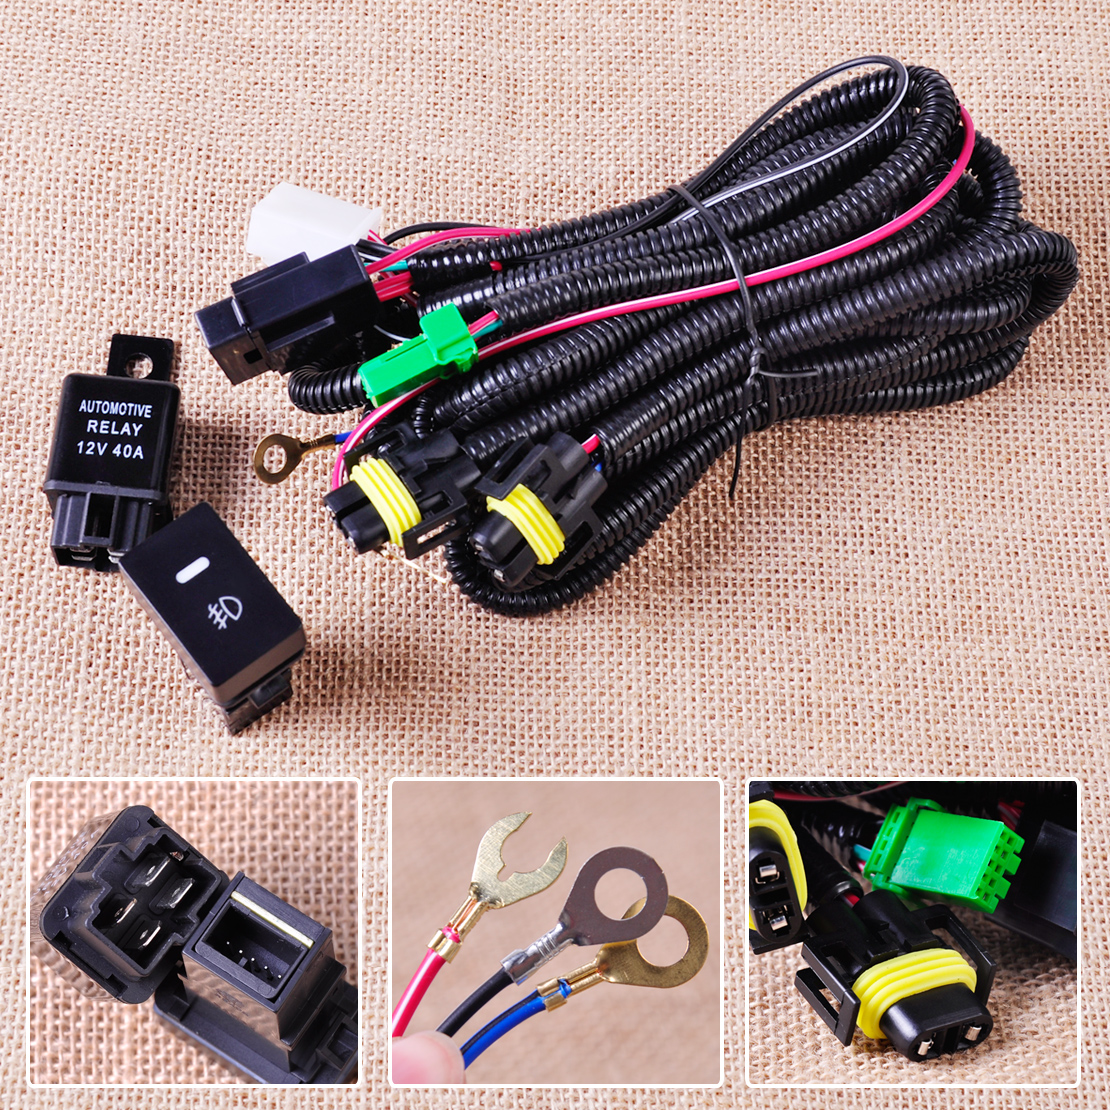 New Wiring Harness Socket Switch For H11 Fog Light Lamp Ford Focus 2010 Nissan Rogue Acura 728360607010 Ebay